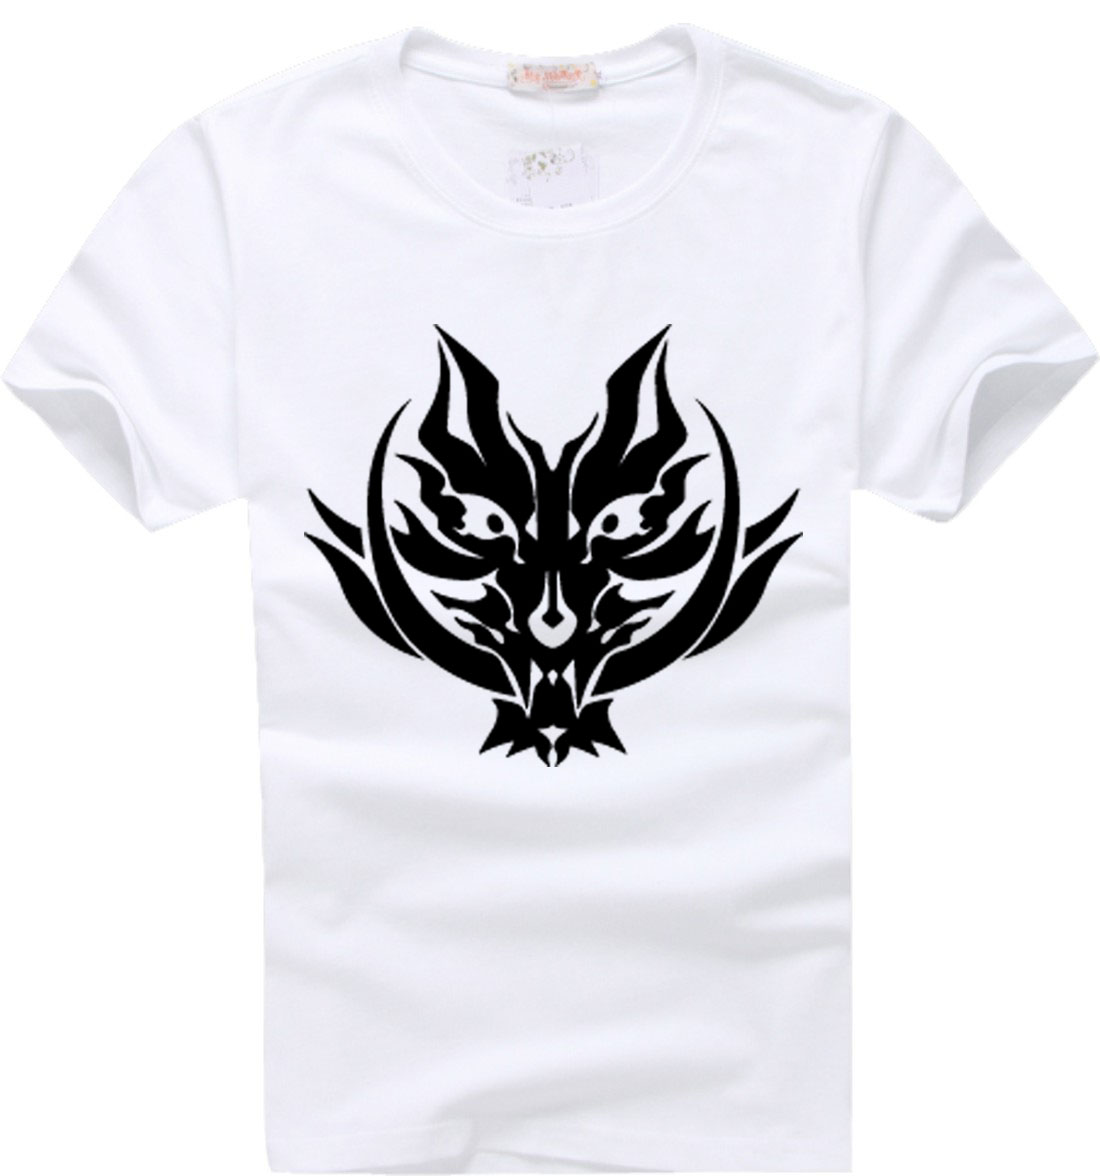 God eater fury liberate fenril T-shirt short sleeve animation